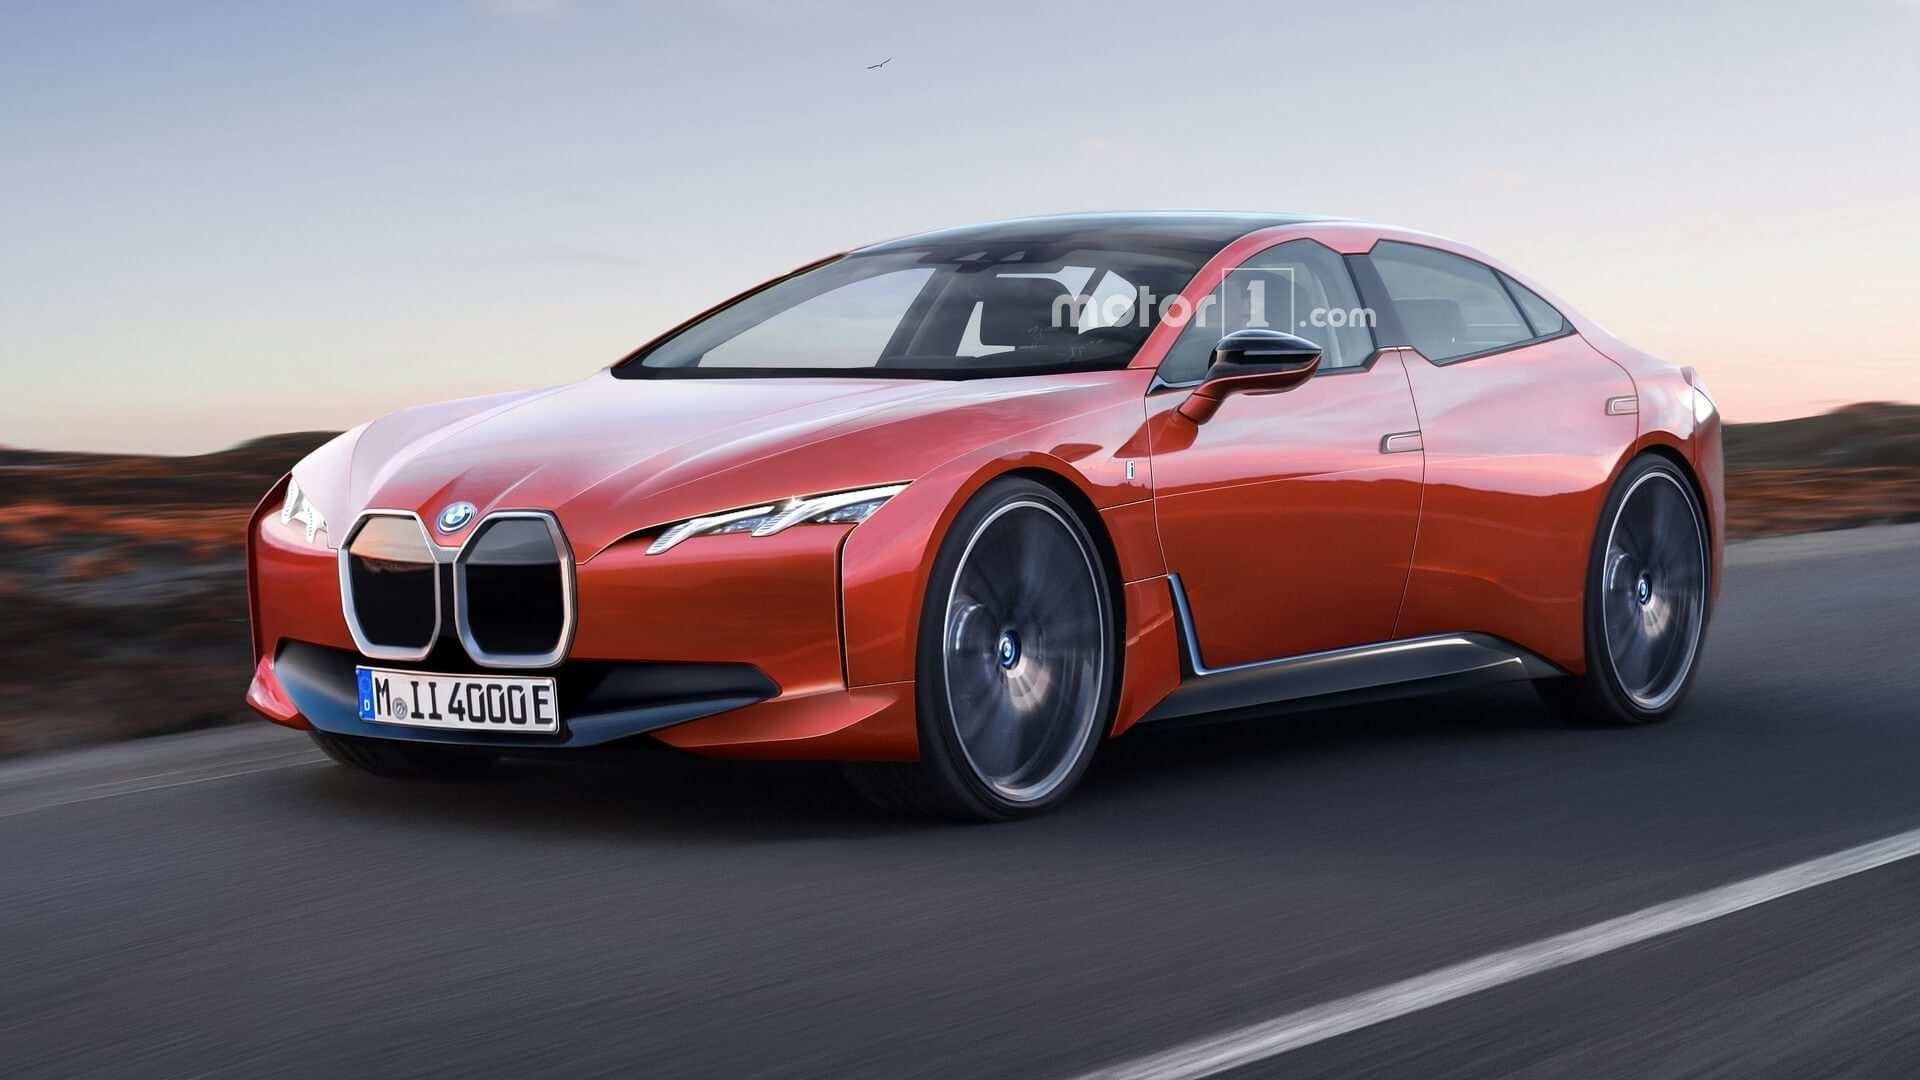 52 The Best BMW Electric Vehicles 2020 Price Design And Review